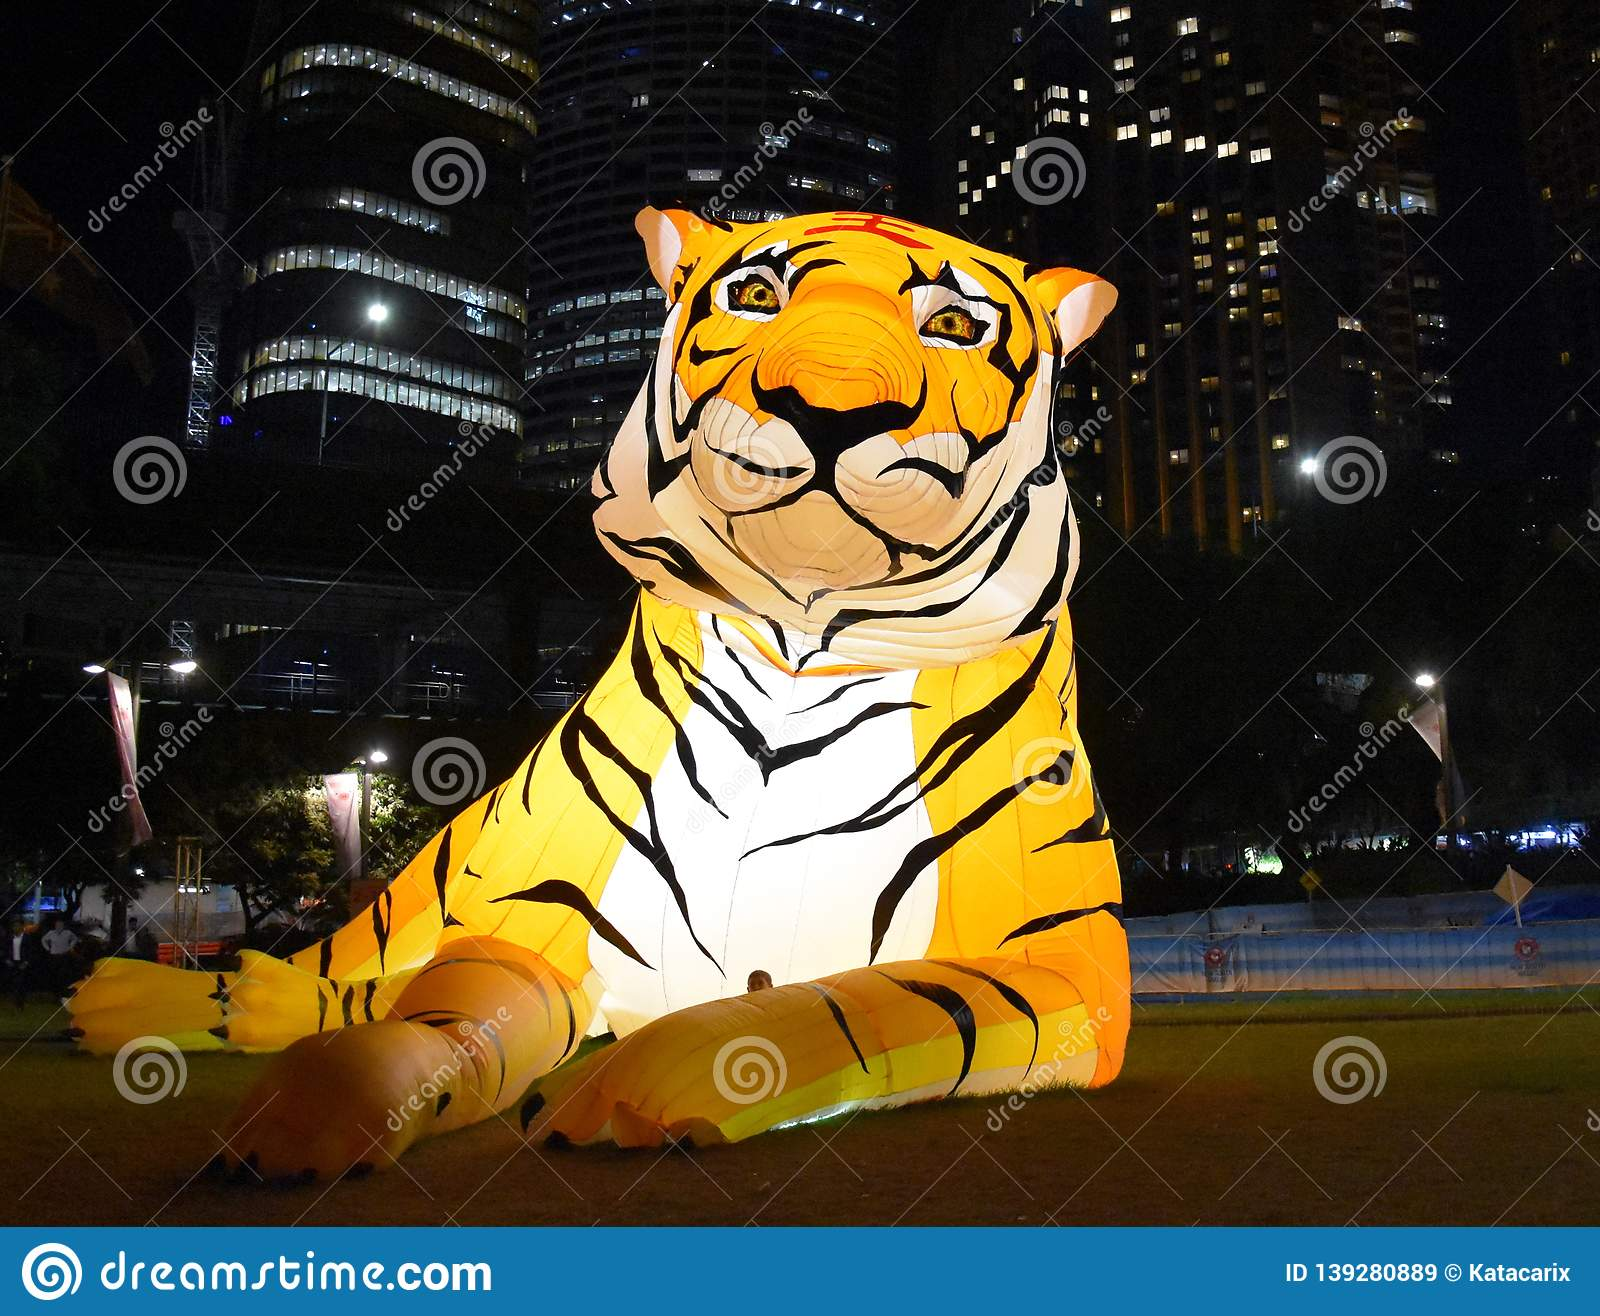 Larger than life lanterns in the shape of Tiger. Chinese zodiac animals at Circular Quay